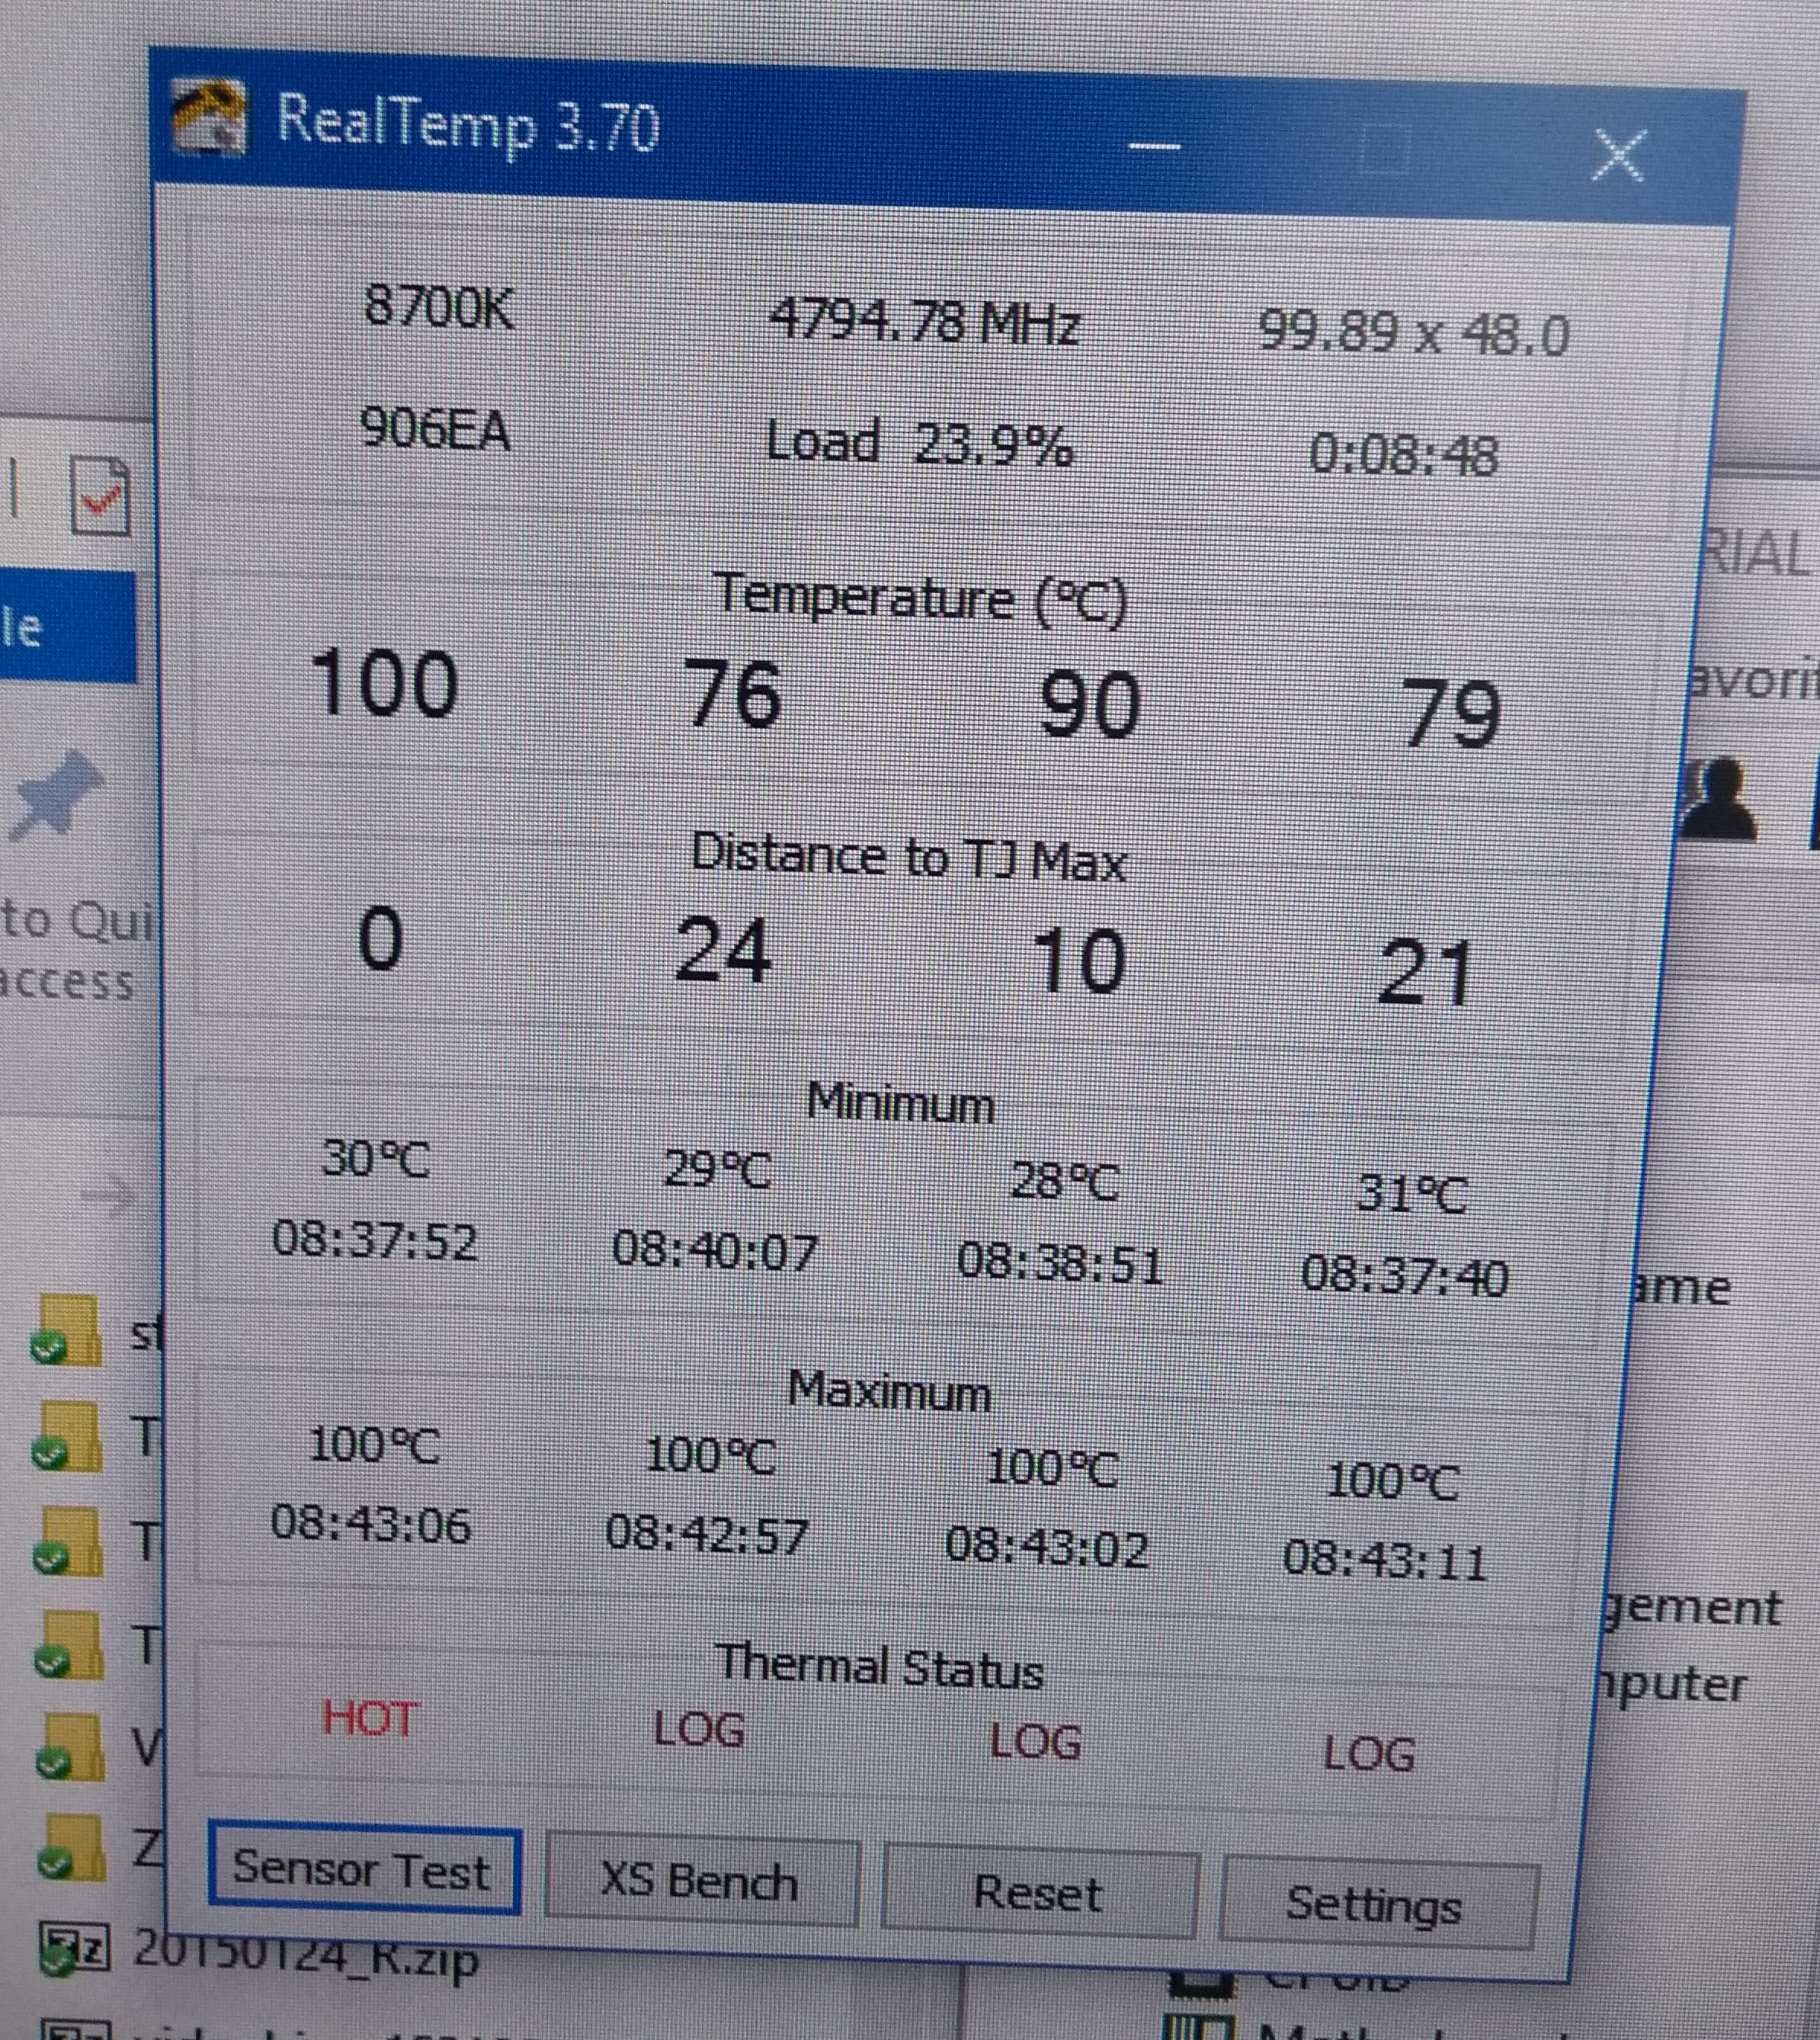 High temperatures on my 8700k | TechPowerUp Forums